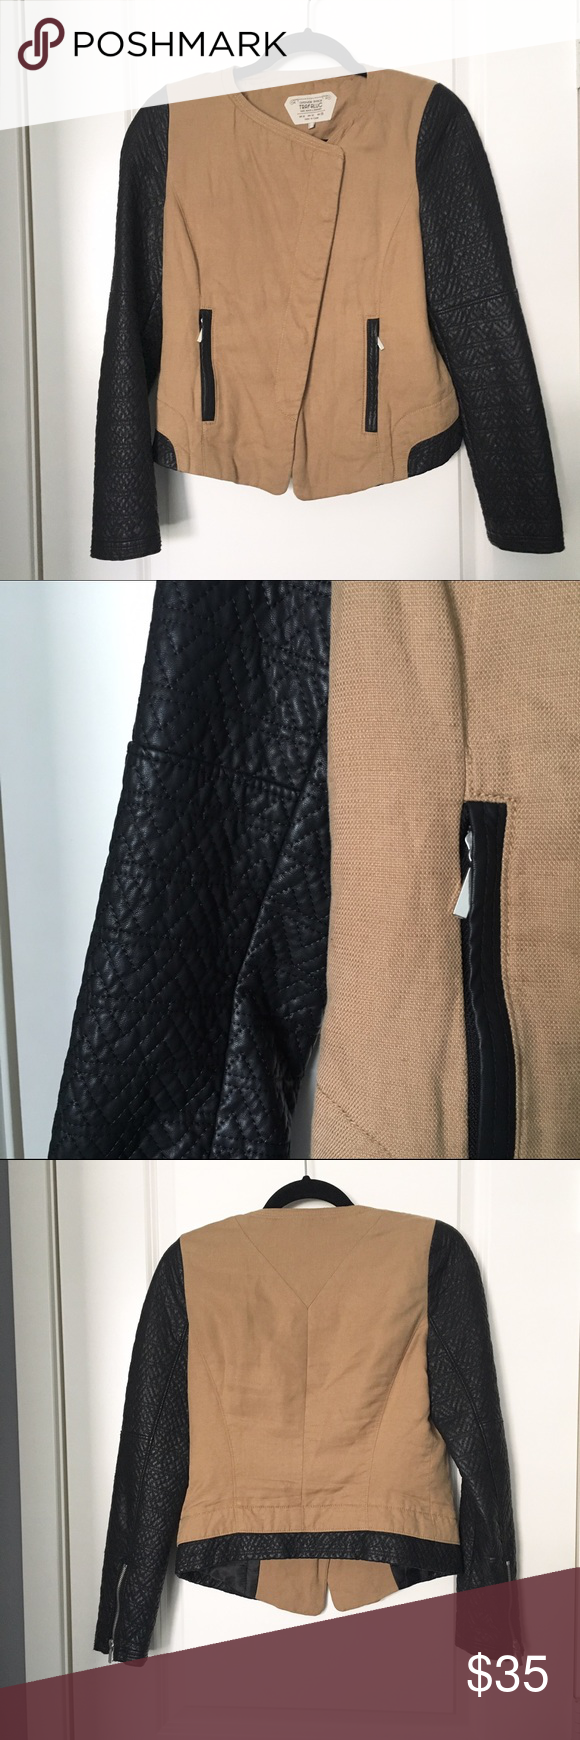 Zara Jacket with Vegan Leather Arms Size: medium Fit: length on the hips (I'm 5'5) Details: quilted detail vegan leather arms with 2 zipper pockets Color: Black and Brown Condition: Great Material: multi - linen, poly... Retail: $64 + tax Zara Jackets & Coats